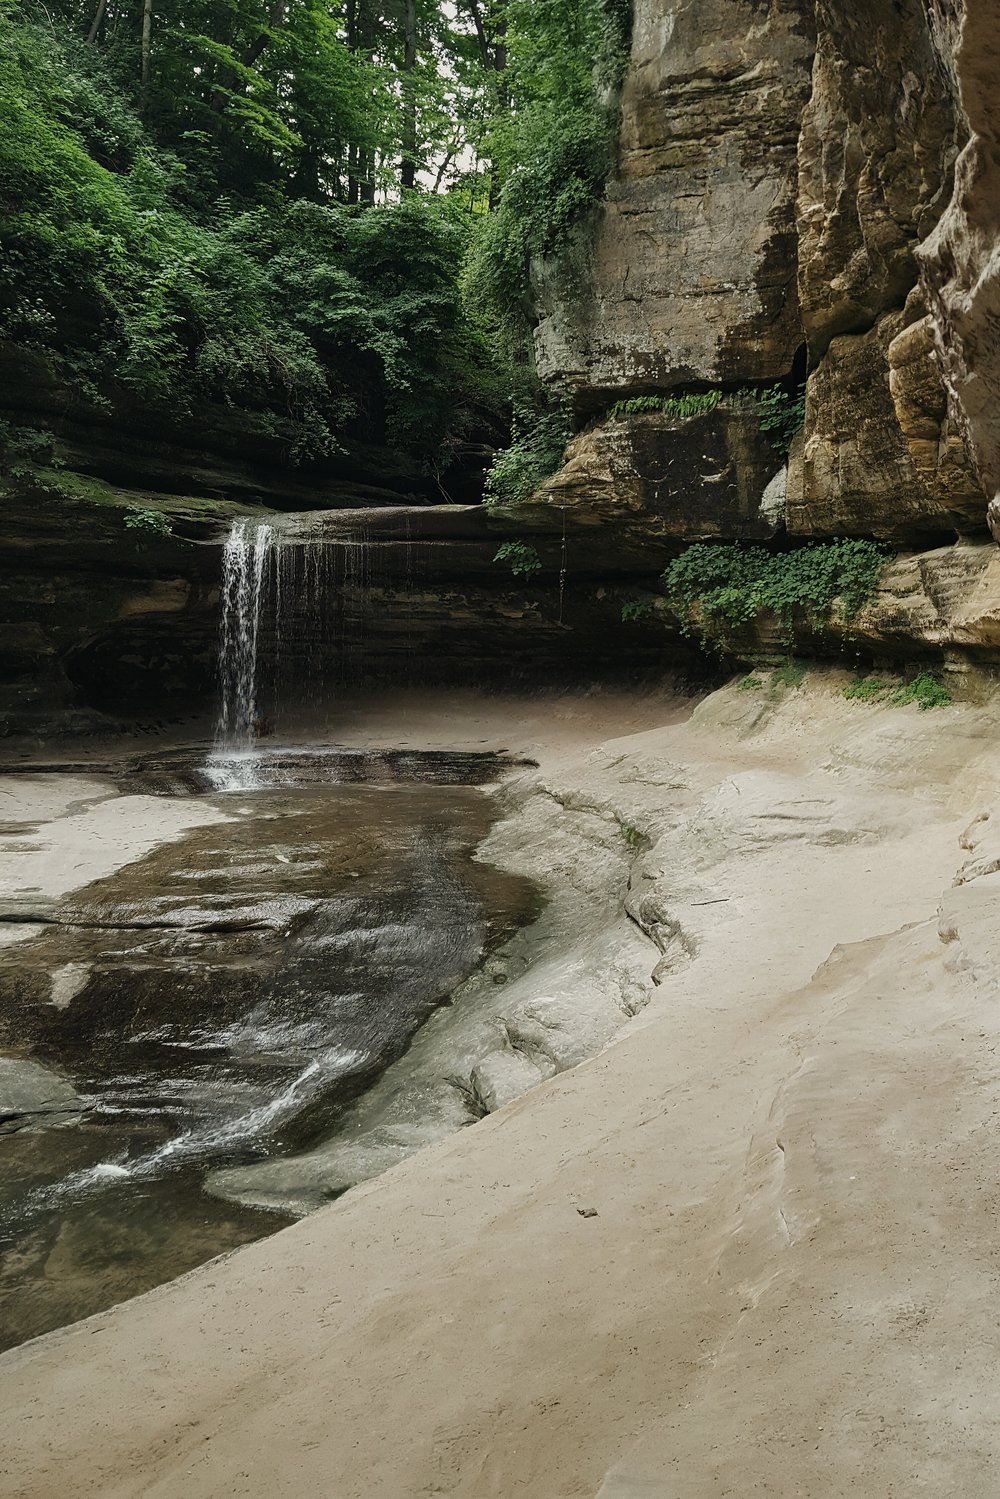 Explore the canyons at Starved Rock